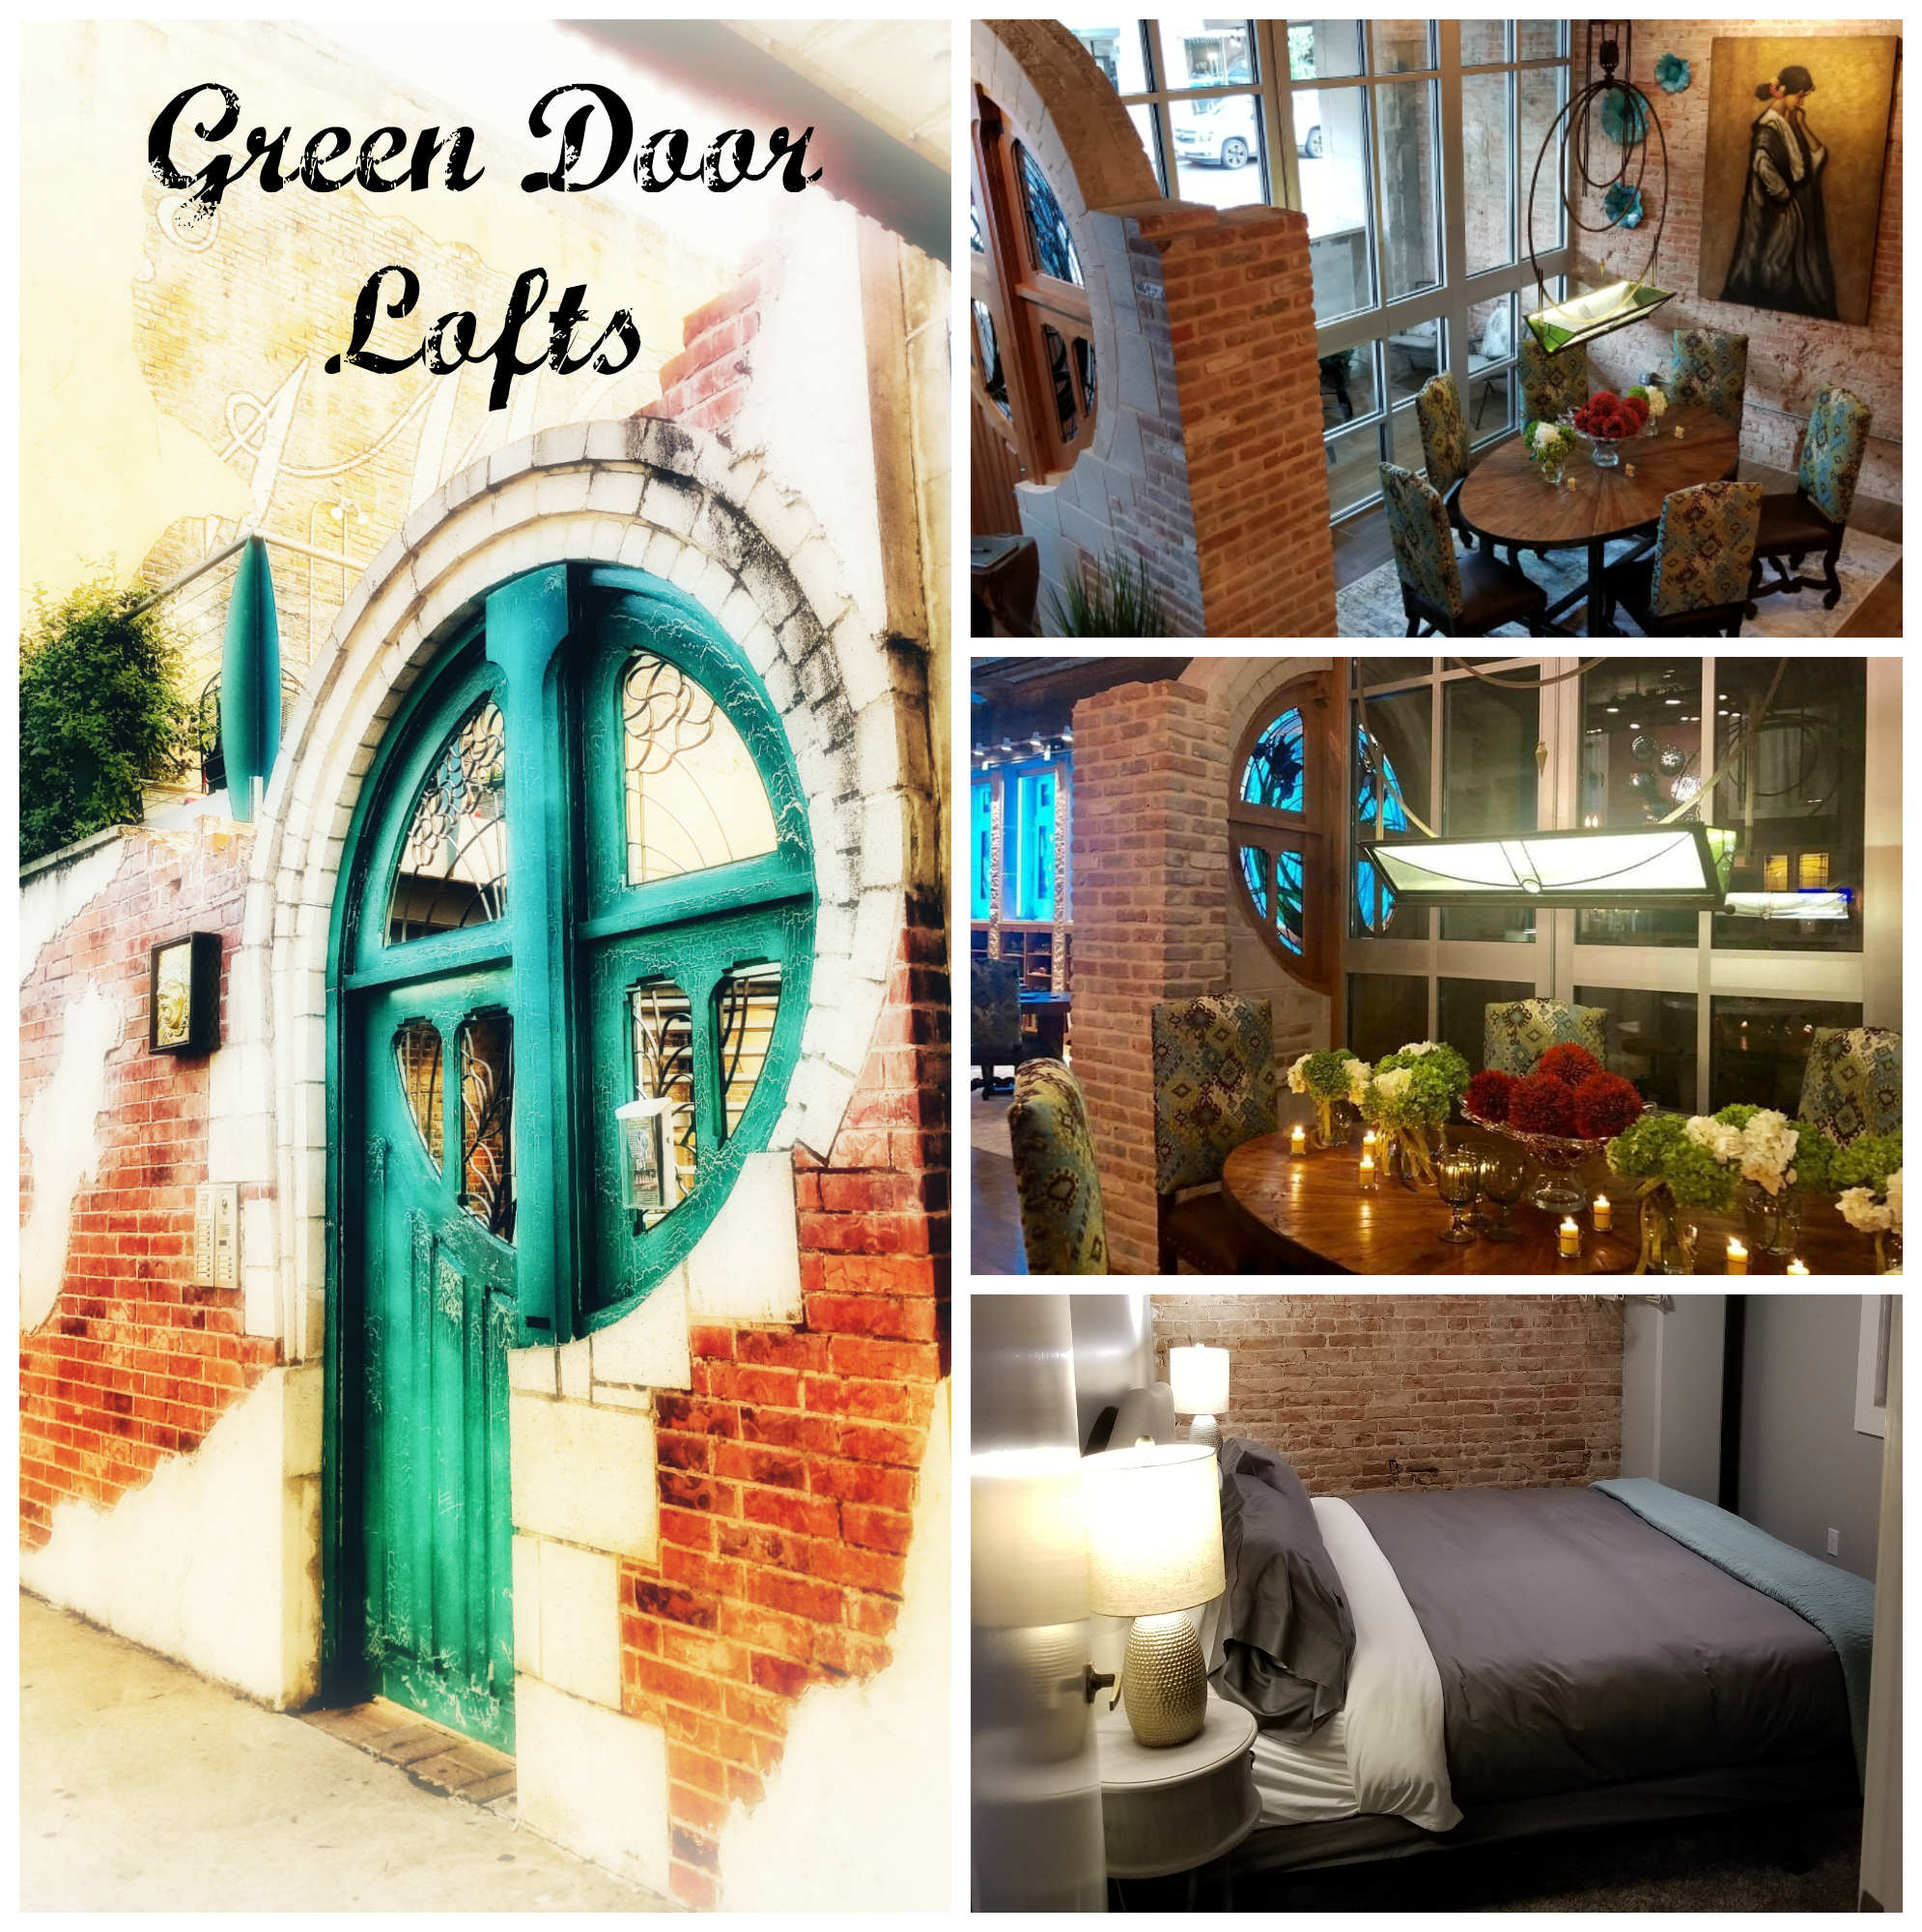 Green Door Lofts Waco